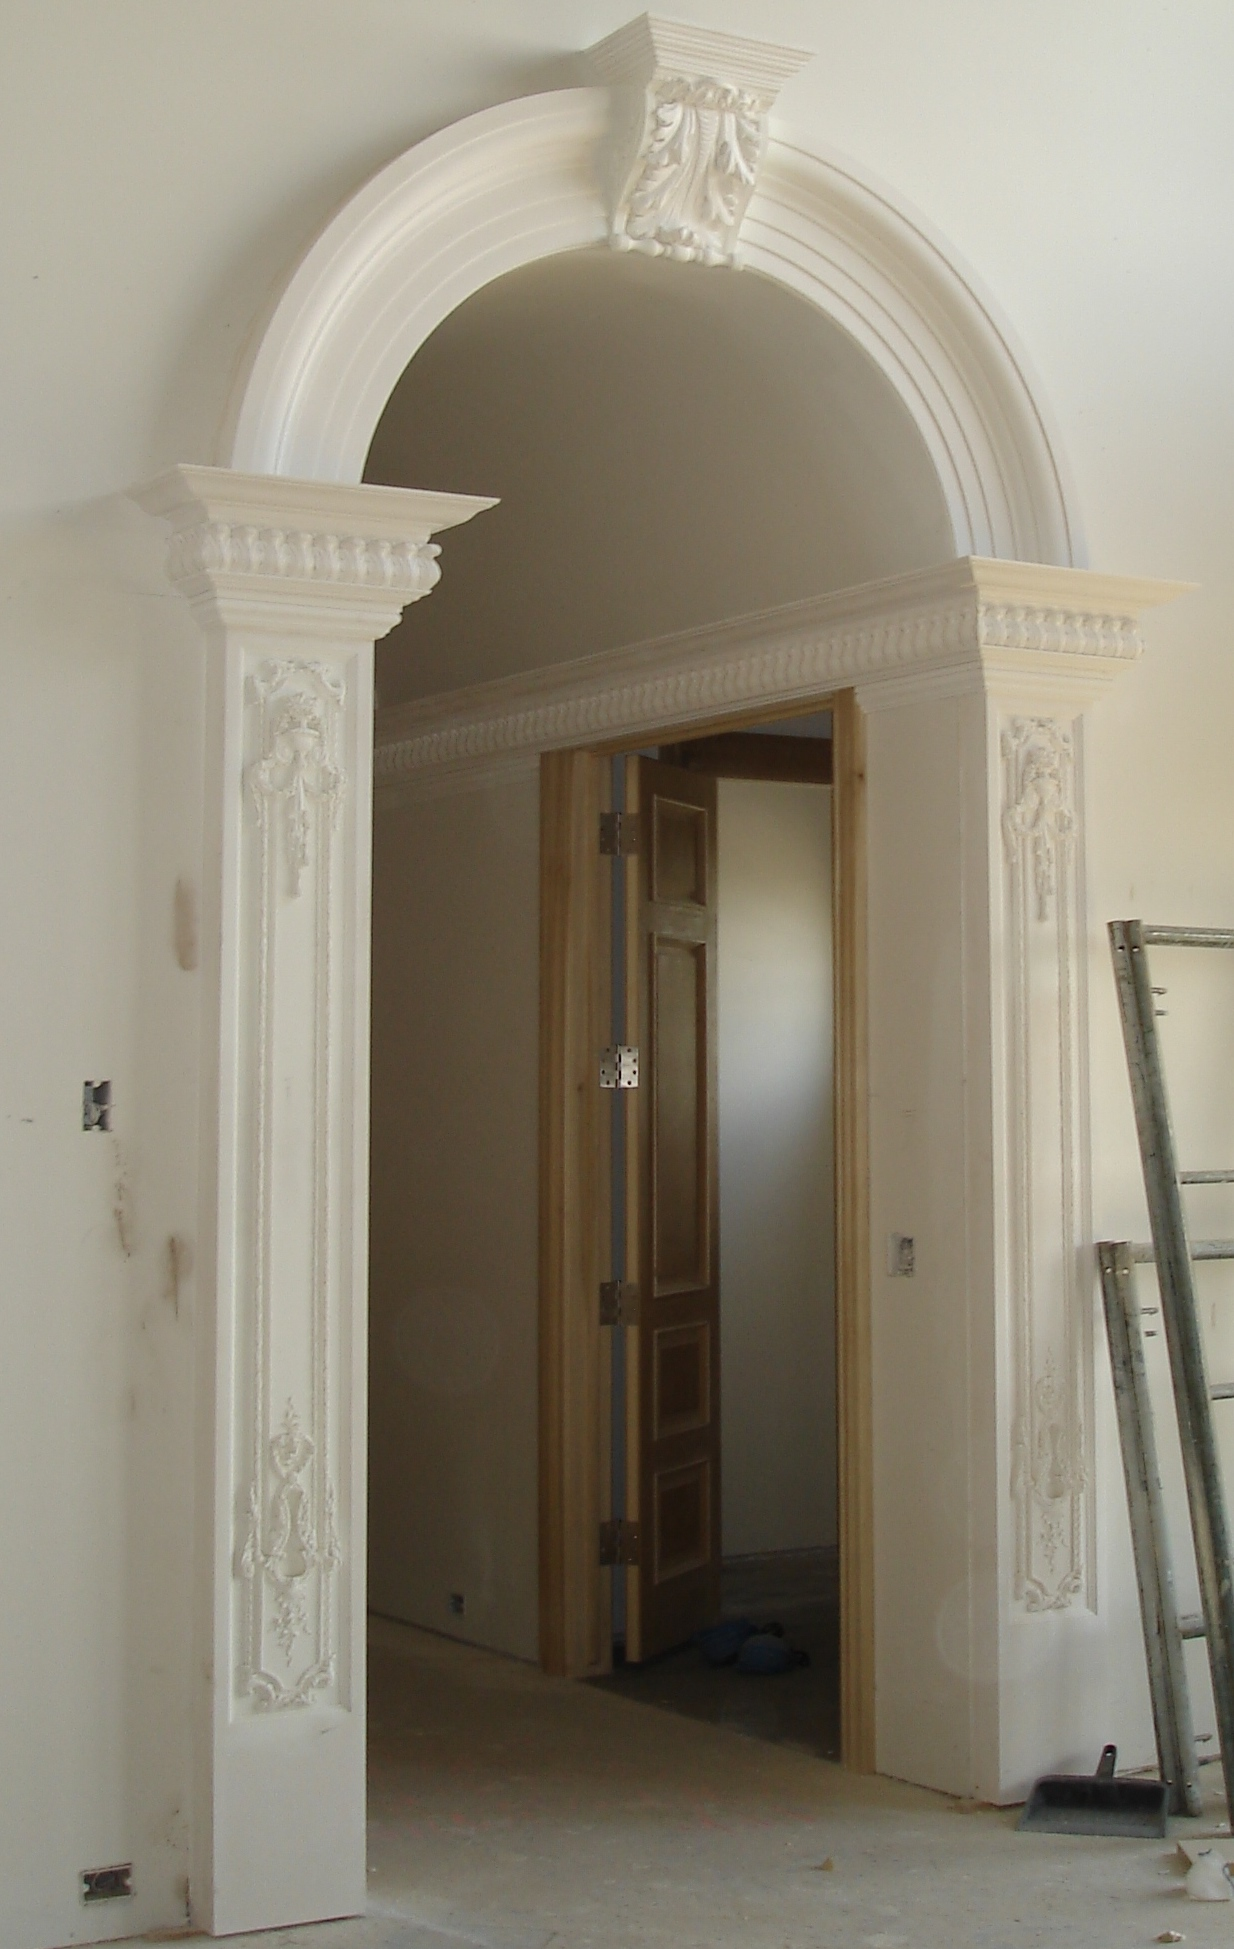 Interior Pilasters. Barrel Vault And Archway Sold Separately.